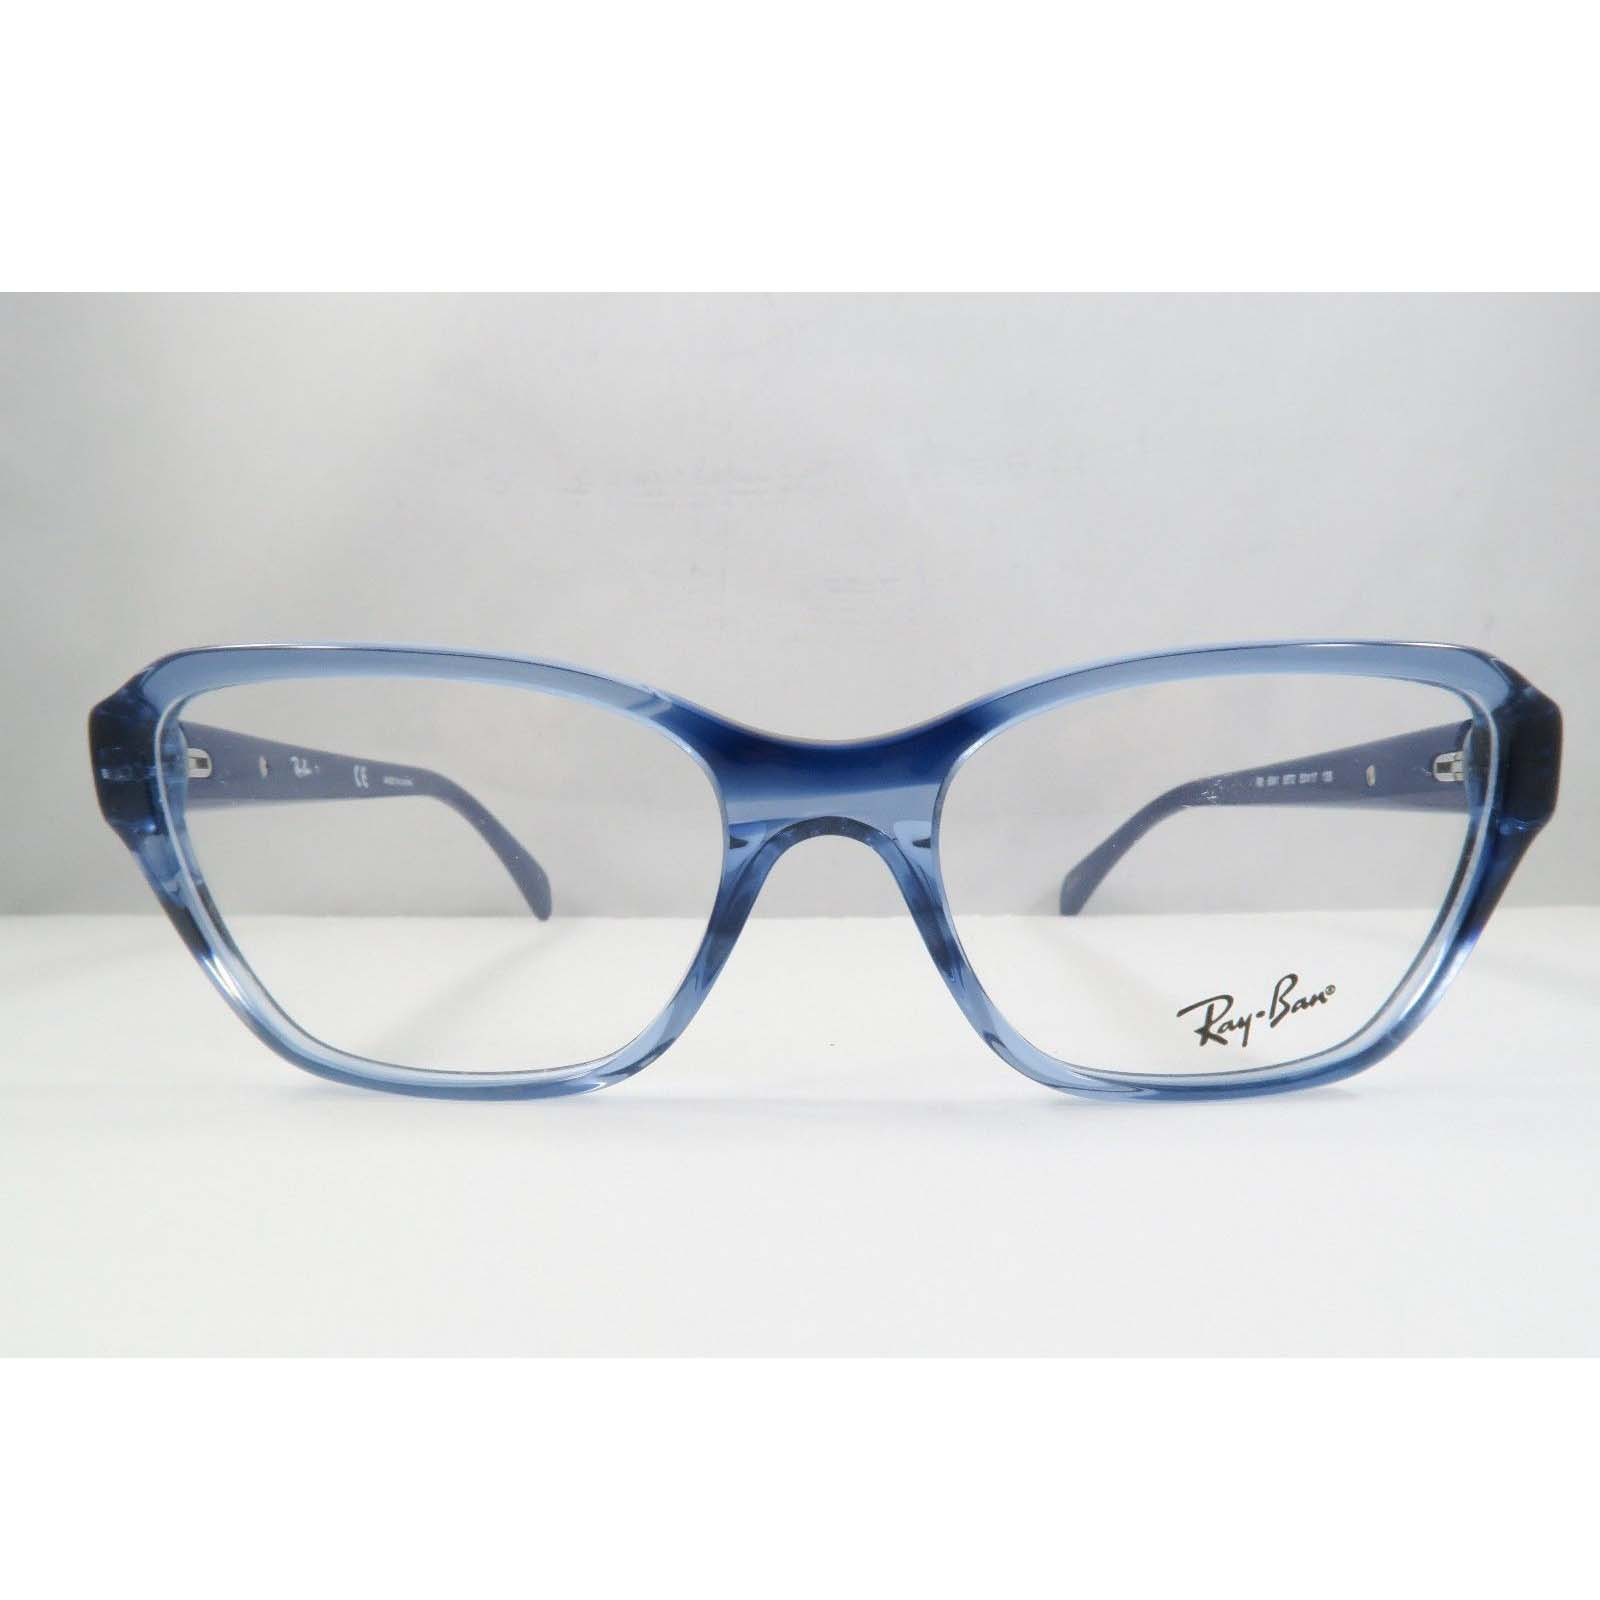 3cc0e9ce74 Ray-Ban RB 5341 5572 Clear Blue New Eyeglasses 55-17-140 - See My ...